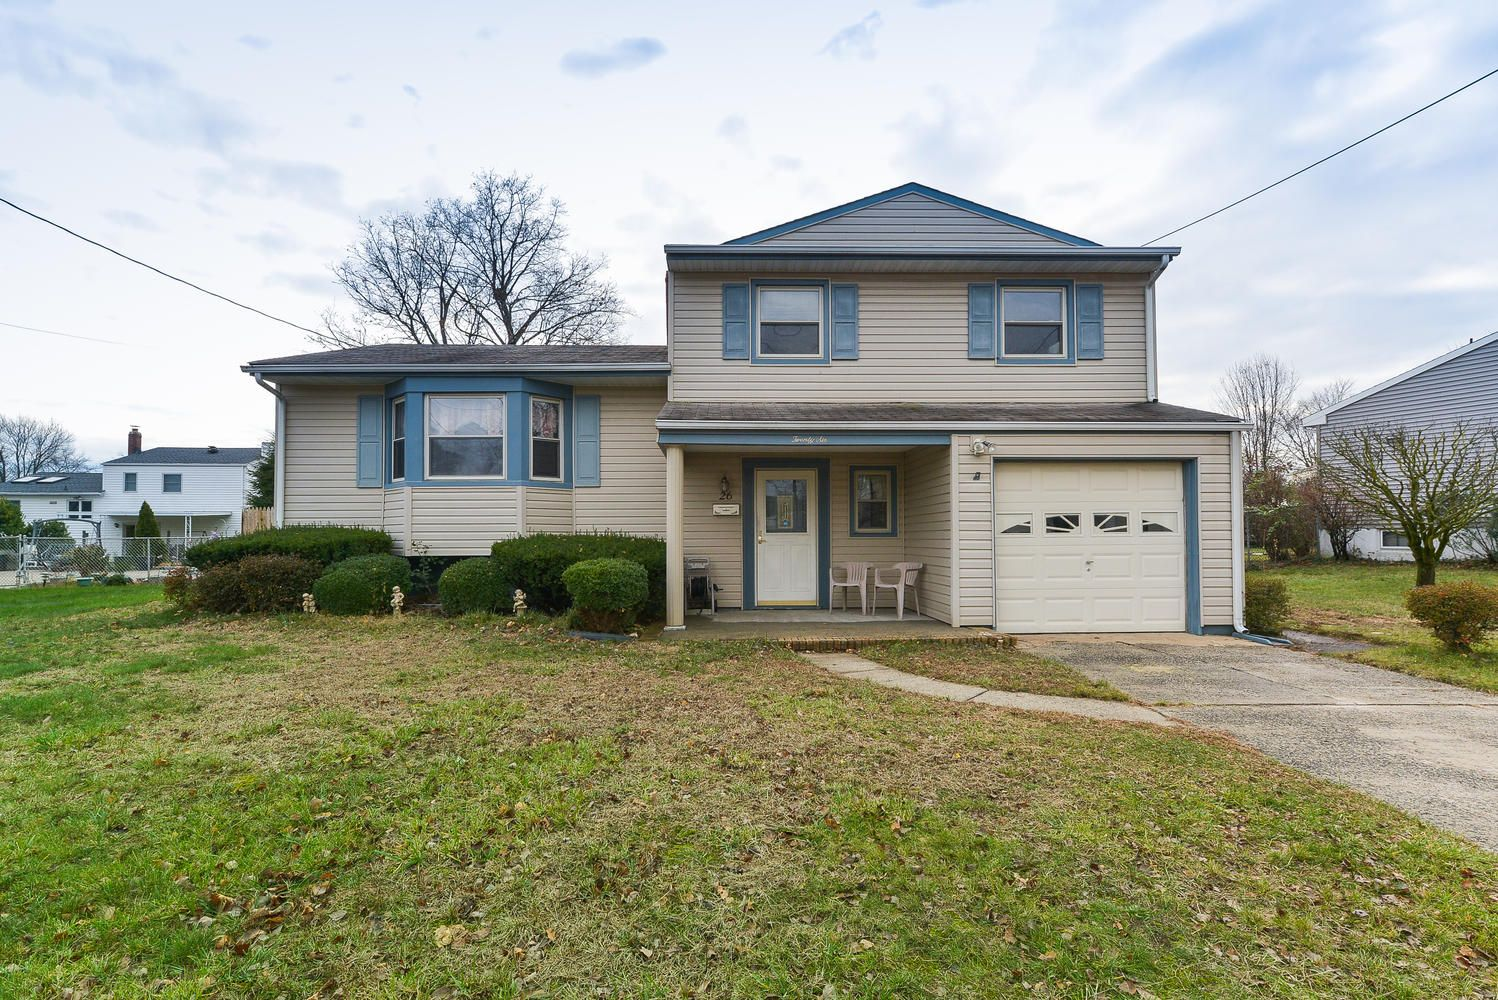 SPACIOUS SPLIT LEVEL HOME WITH A GREAT LOCATION. FOUR